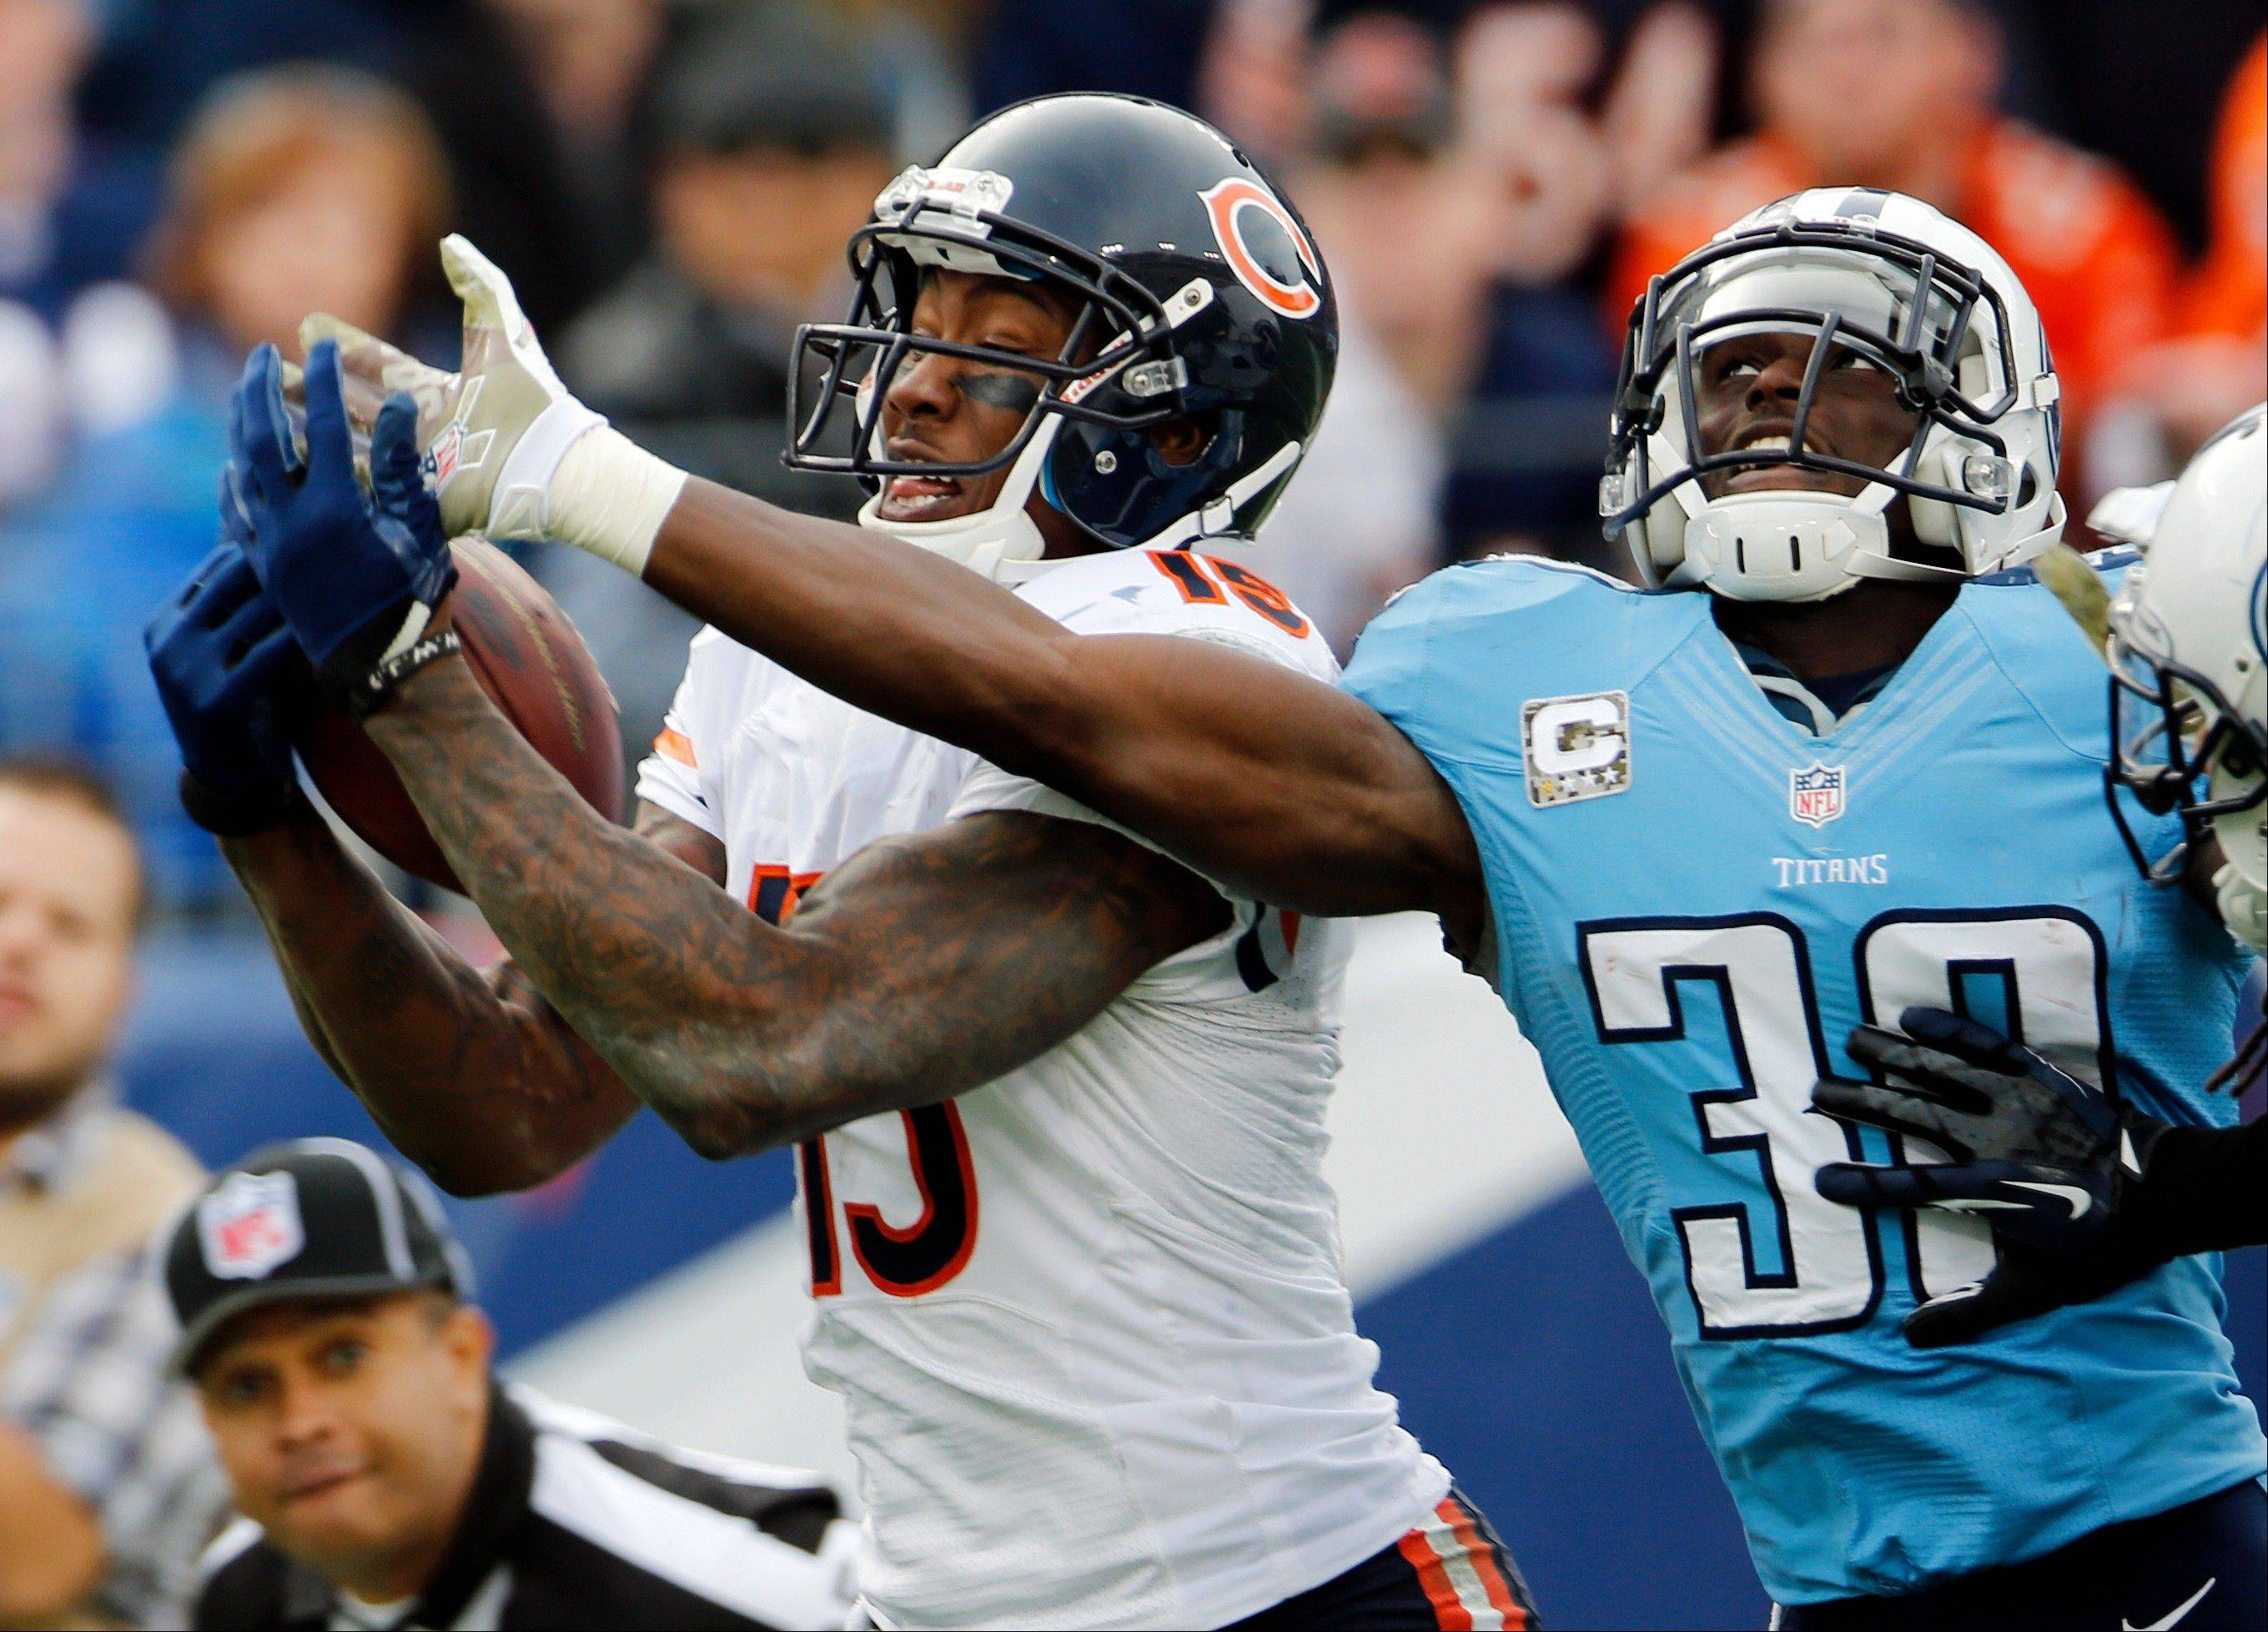 Chicago Bears wide receiver Brandon Marshall catches a 39-yard touchdown pass ahead of Tennessee Titans cornerback Jason McCourty in the fourth quarter. The Bears beat the Titans 51-20.